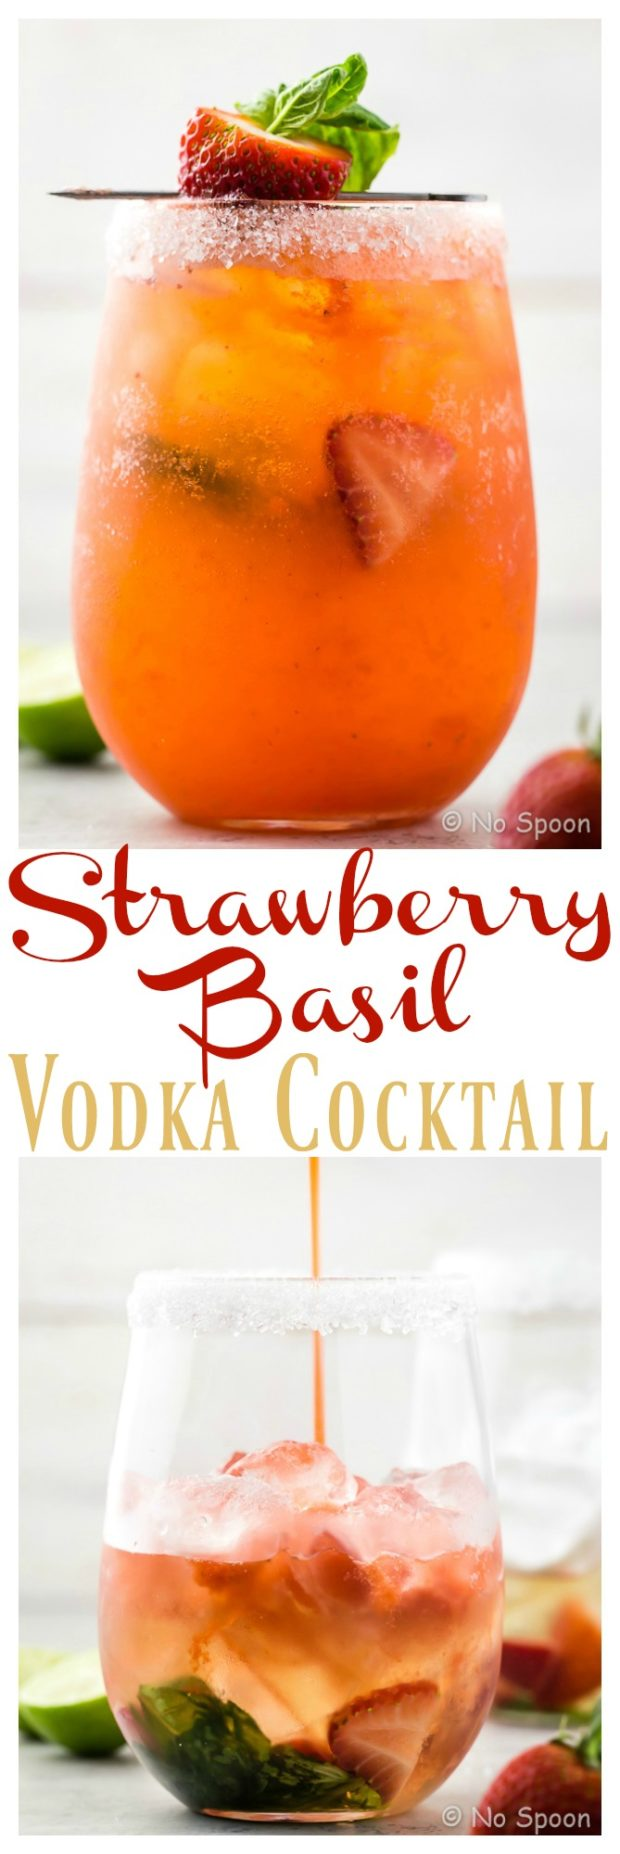 Strawberry Basil Vodka Cocktail | The perfect smooth sip for summer! A refreshing mix of fresh strawberries, herbaceous basil, crisp 7UP and subtle vodka, this libation is ideal for relaxing or entertaining! #summer #strawberry #basil #vodka #cocktail #recipe